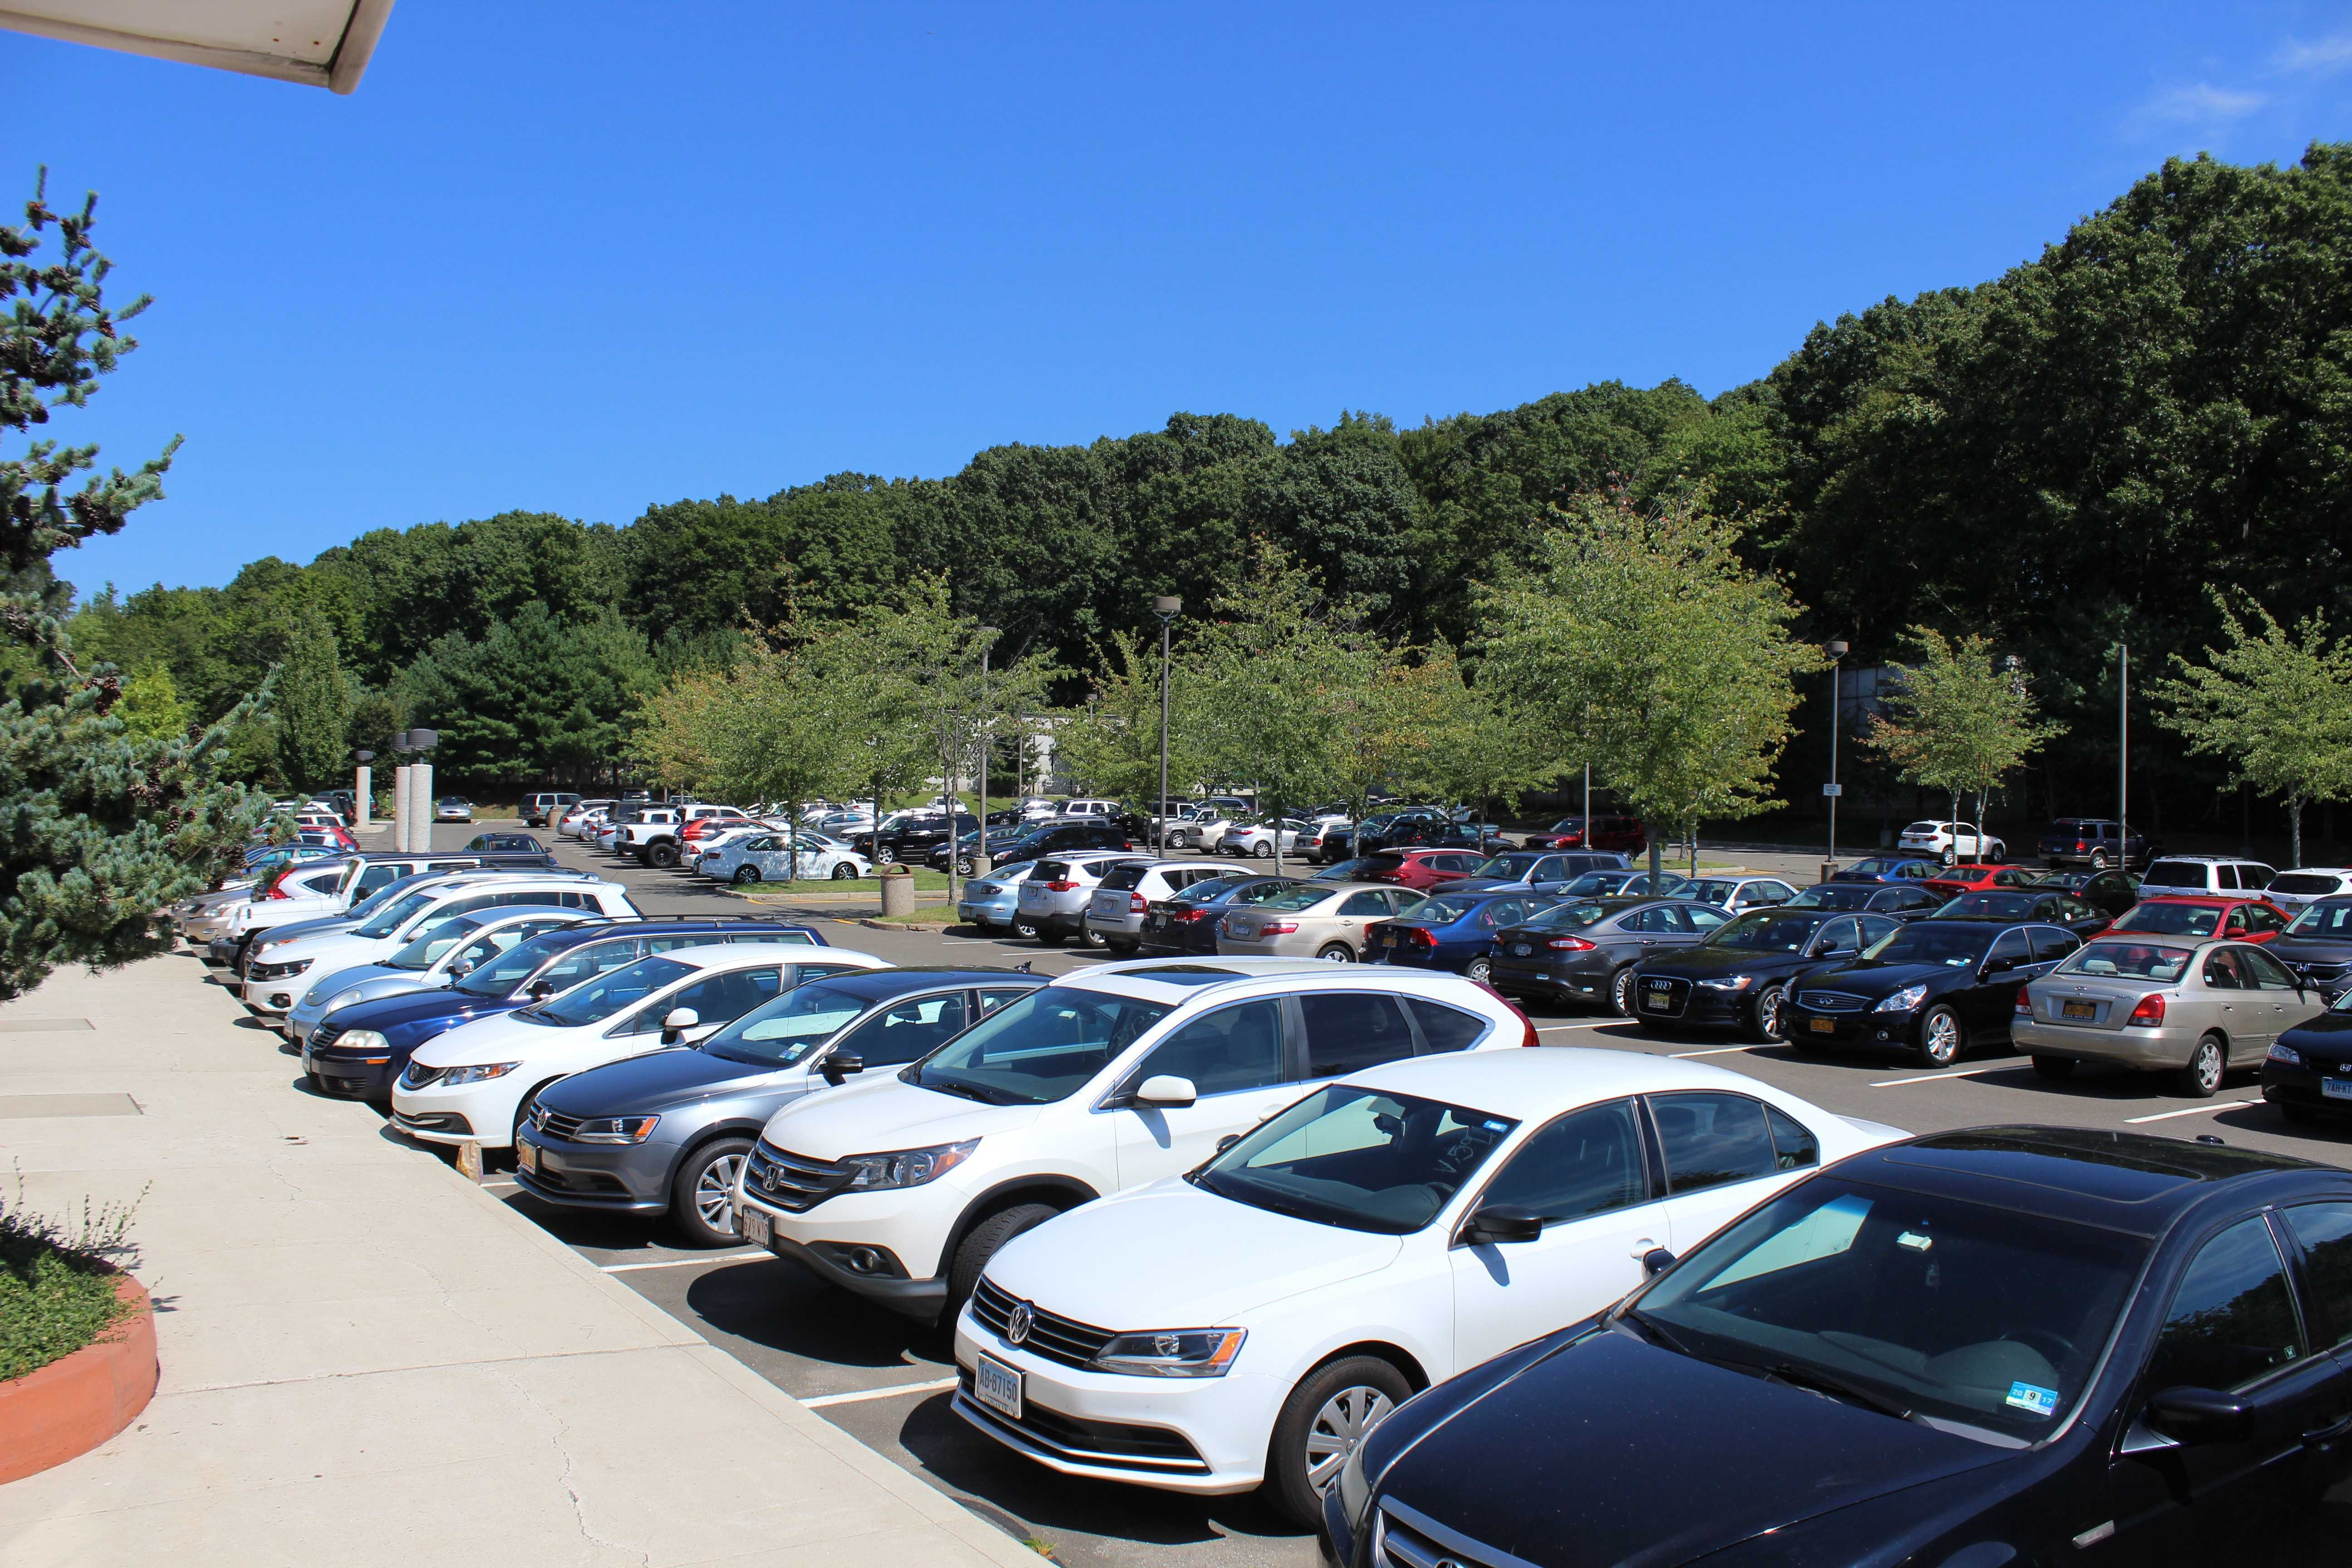 Due to the new parking rules and regulations, all sophomores have the option to park in Hilltop parking lot.